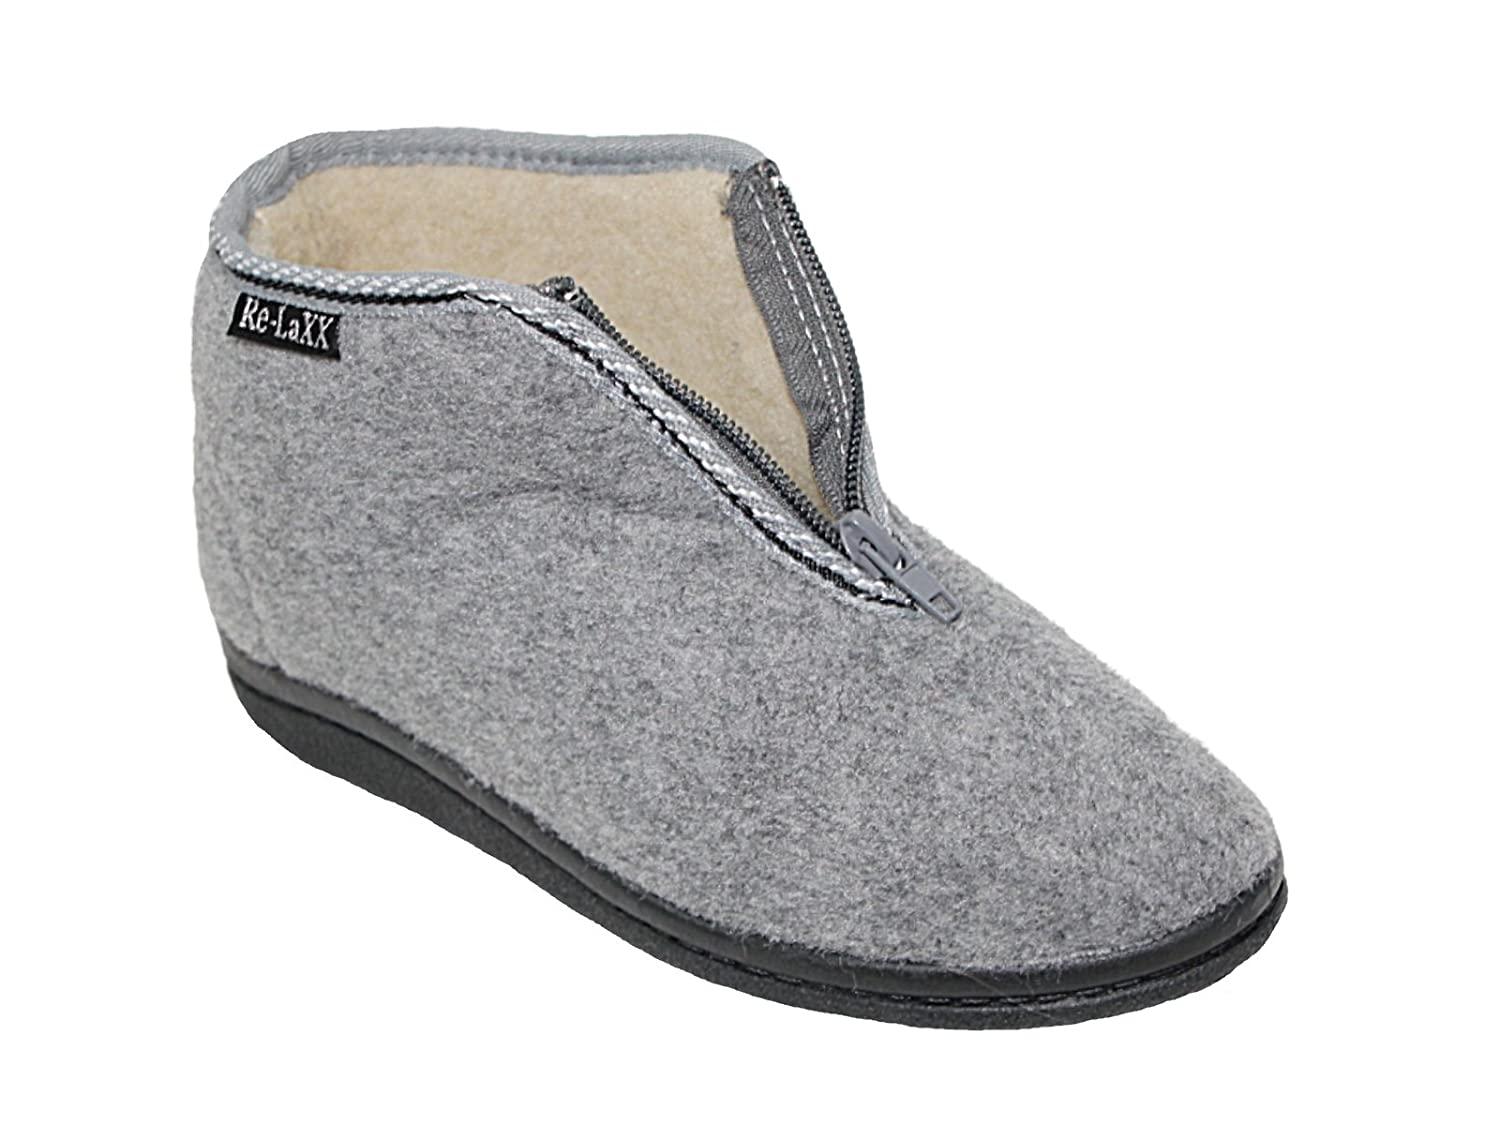 0af601dbb85f Ladies Wool Sheepskin Faux Fur Lined Slip On Elastic Gusset Low Wedge Flat  Moccasin Hard Sole Boot Slippers Shoes Size 3-9  Amazon.co.uk  Shoes   Bags